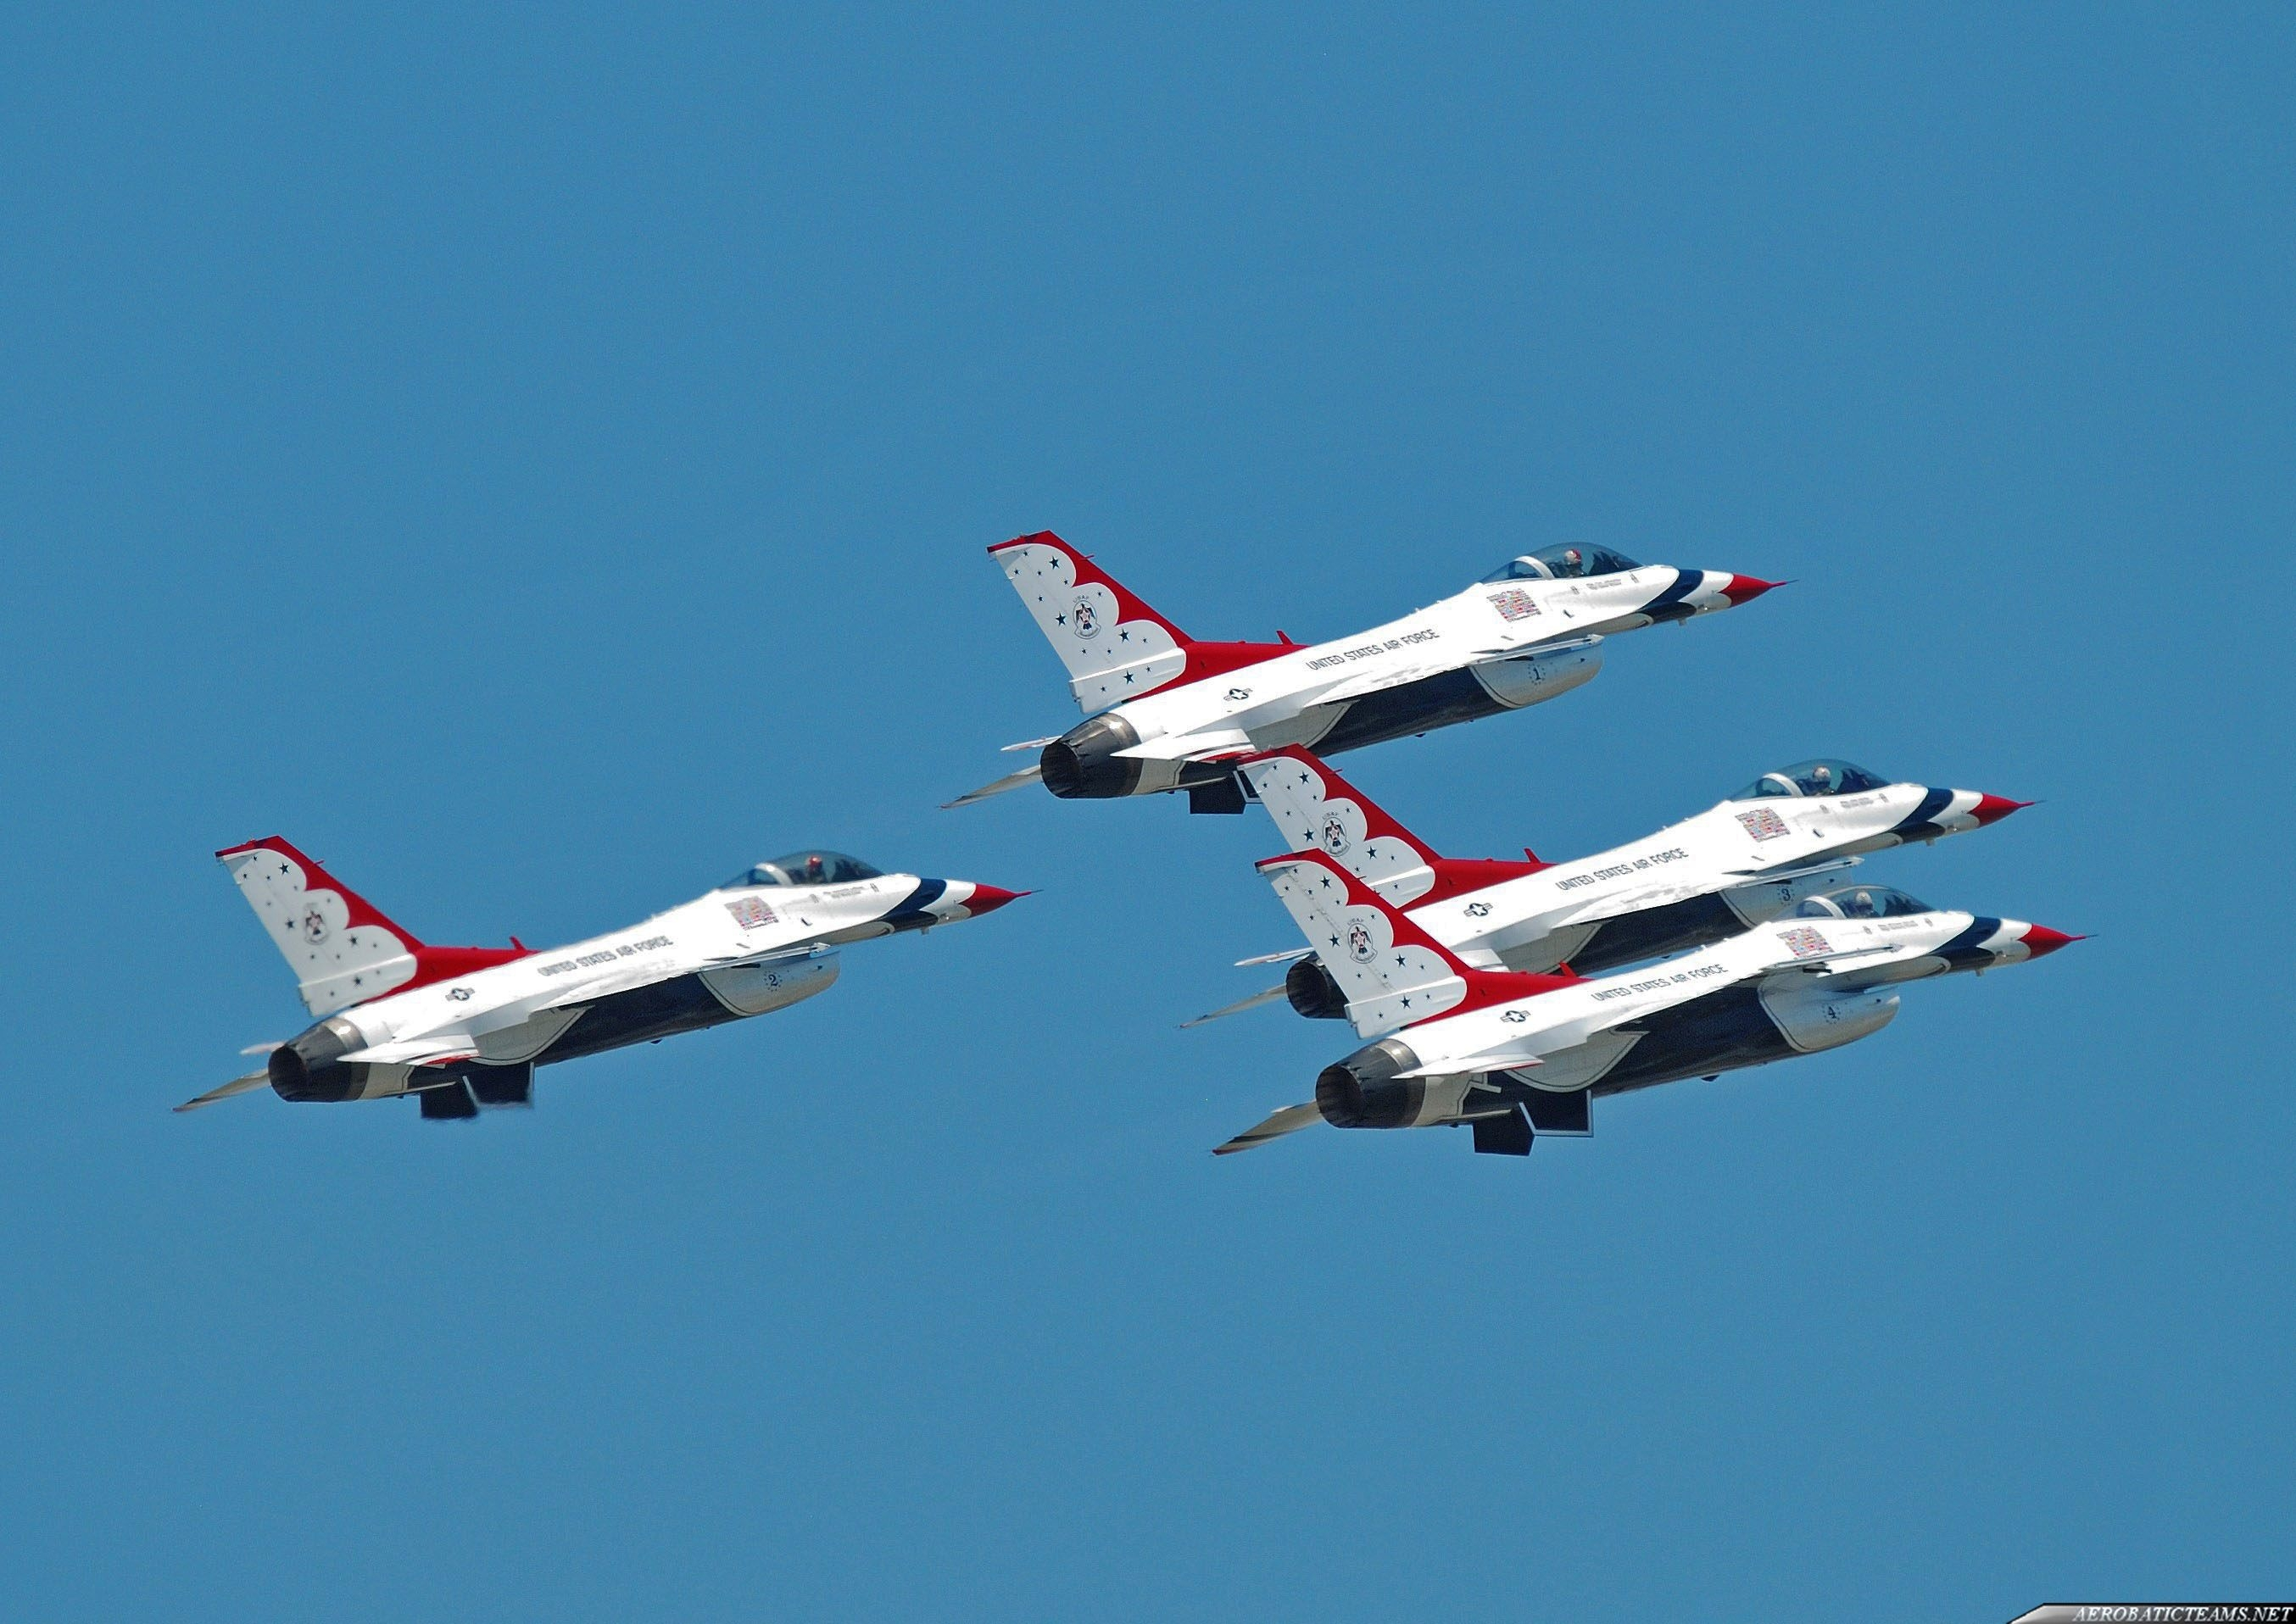 Thunderbirds resume flights